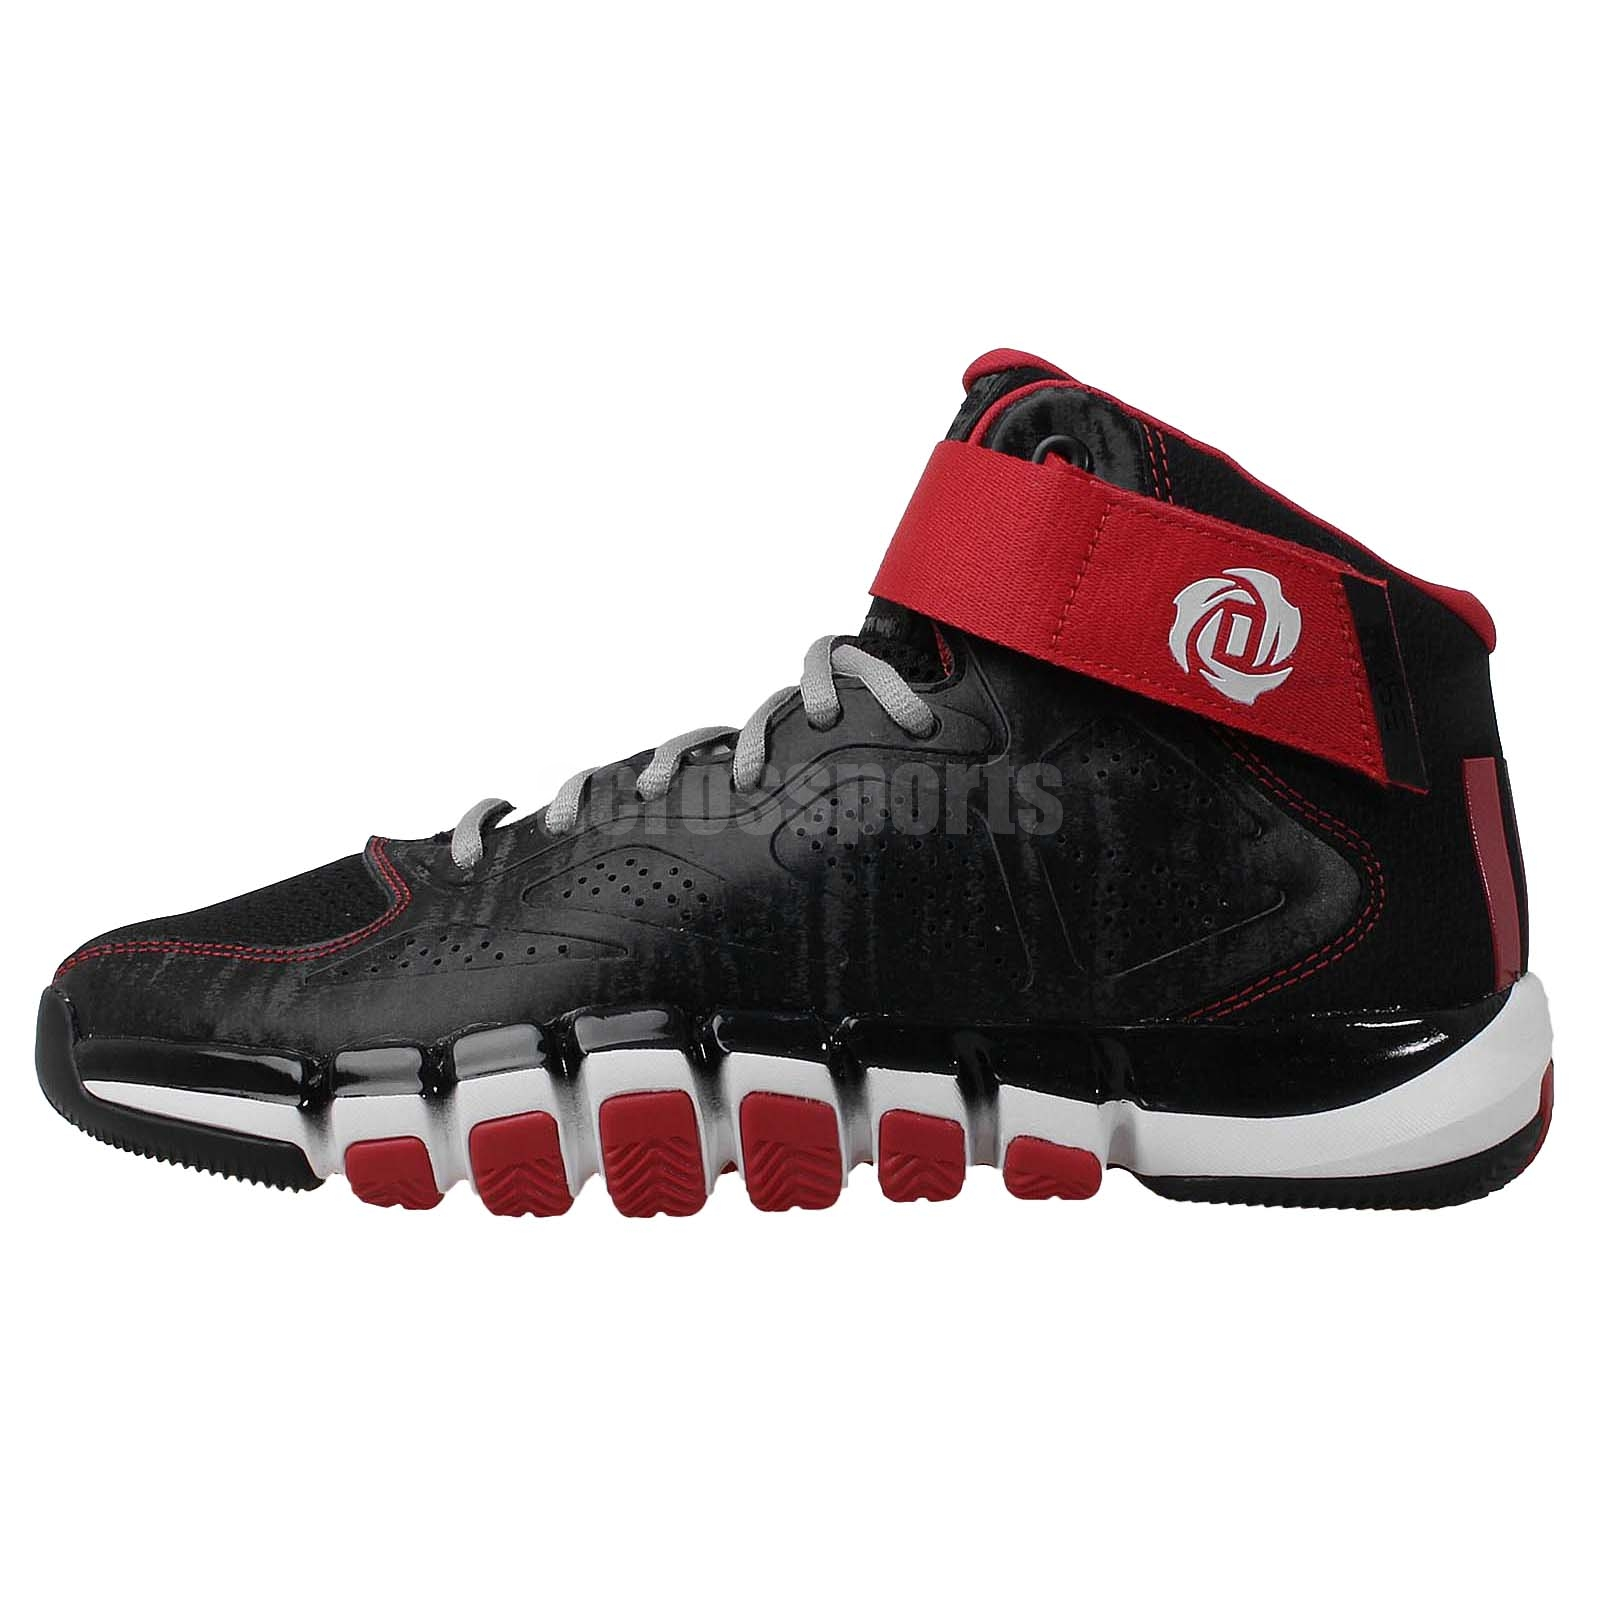 derrick rose shoes red - photo #6